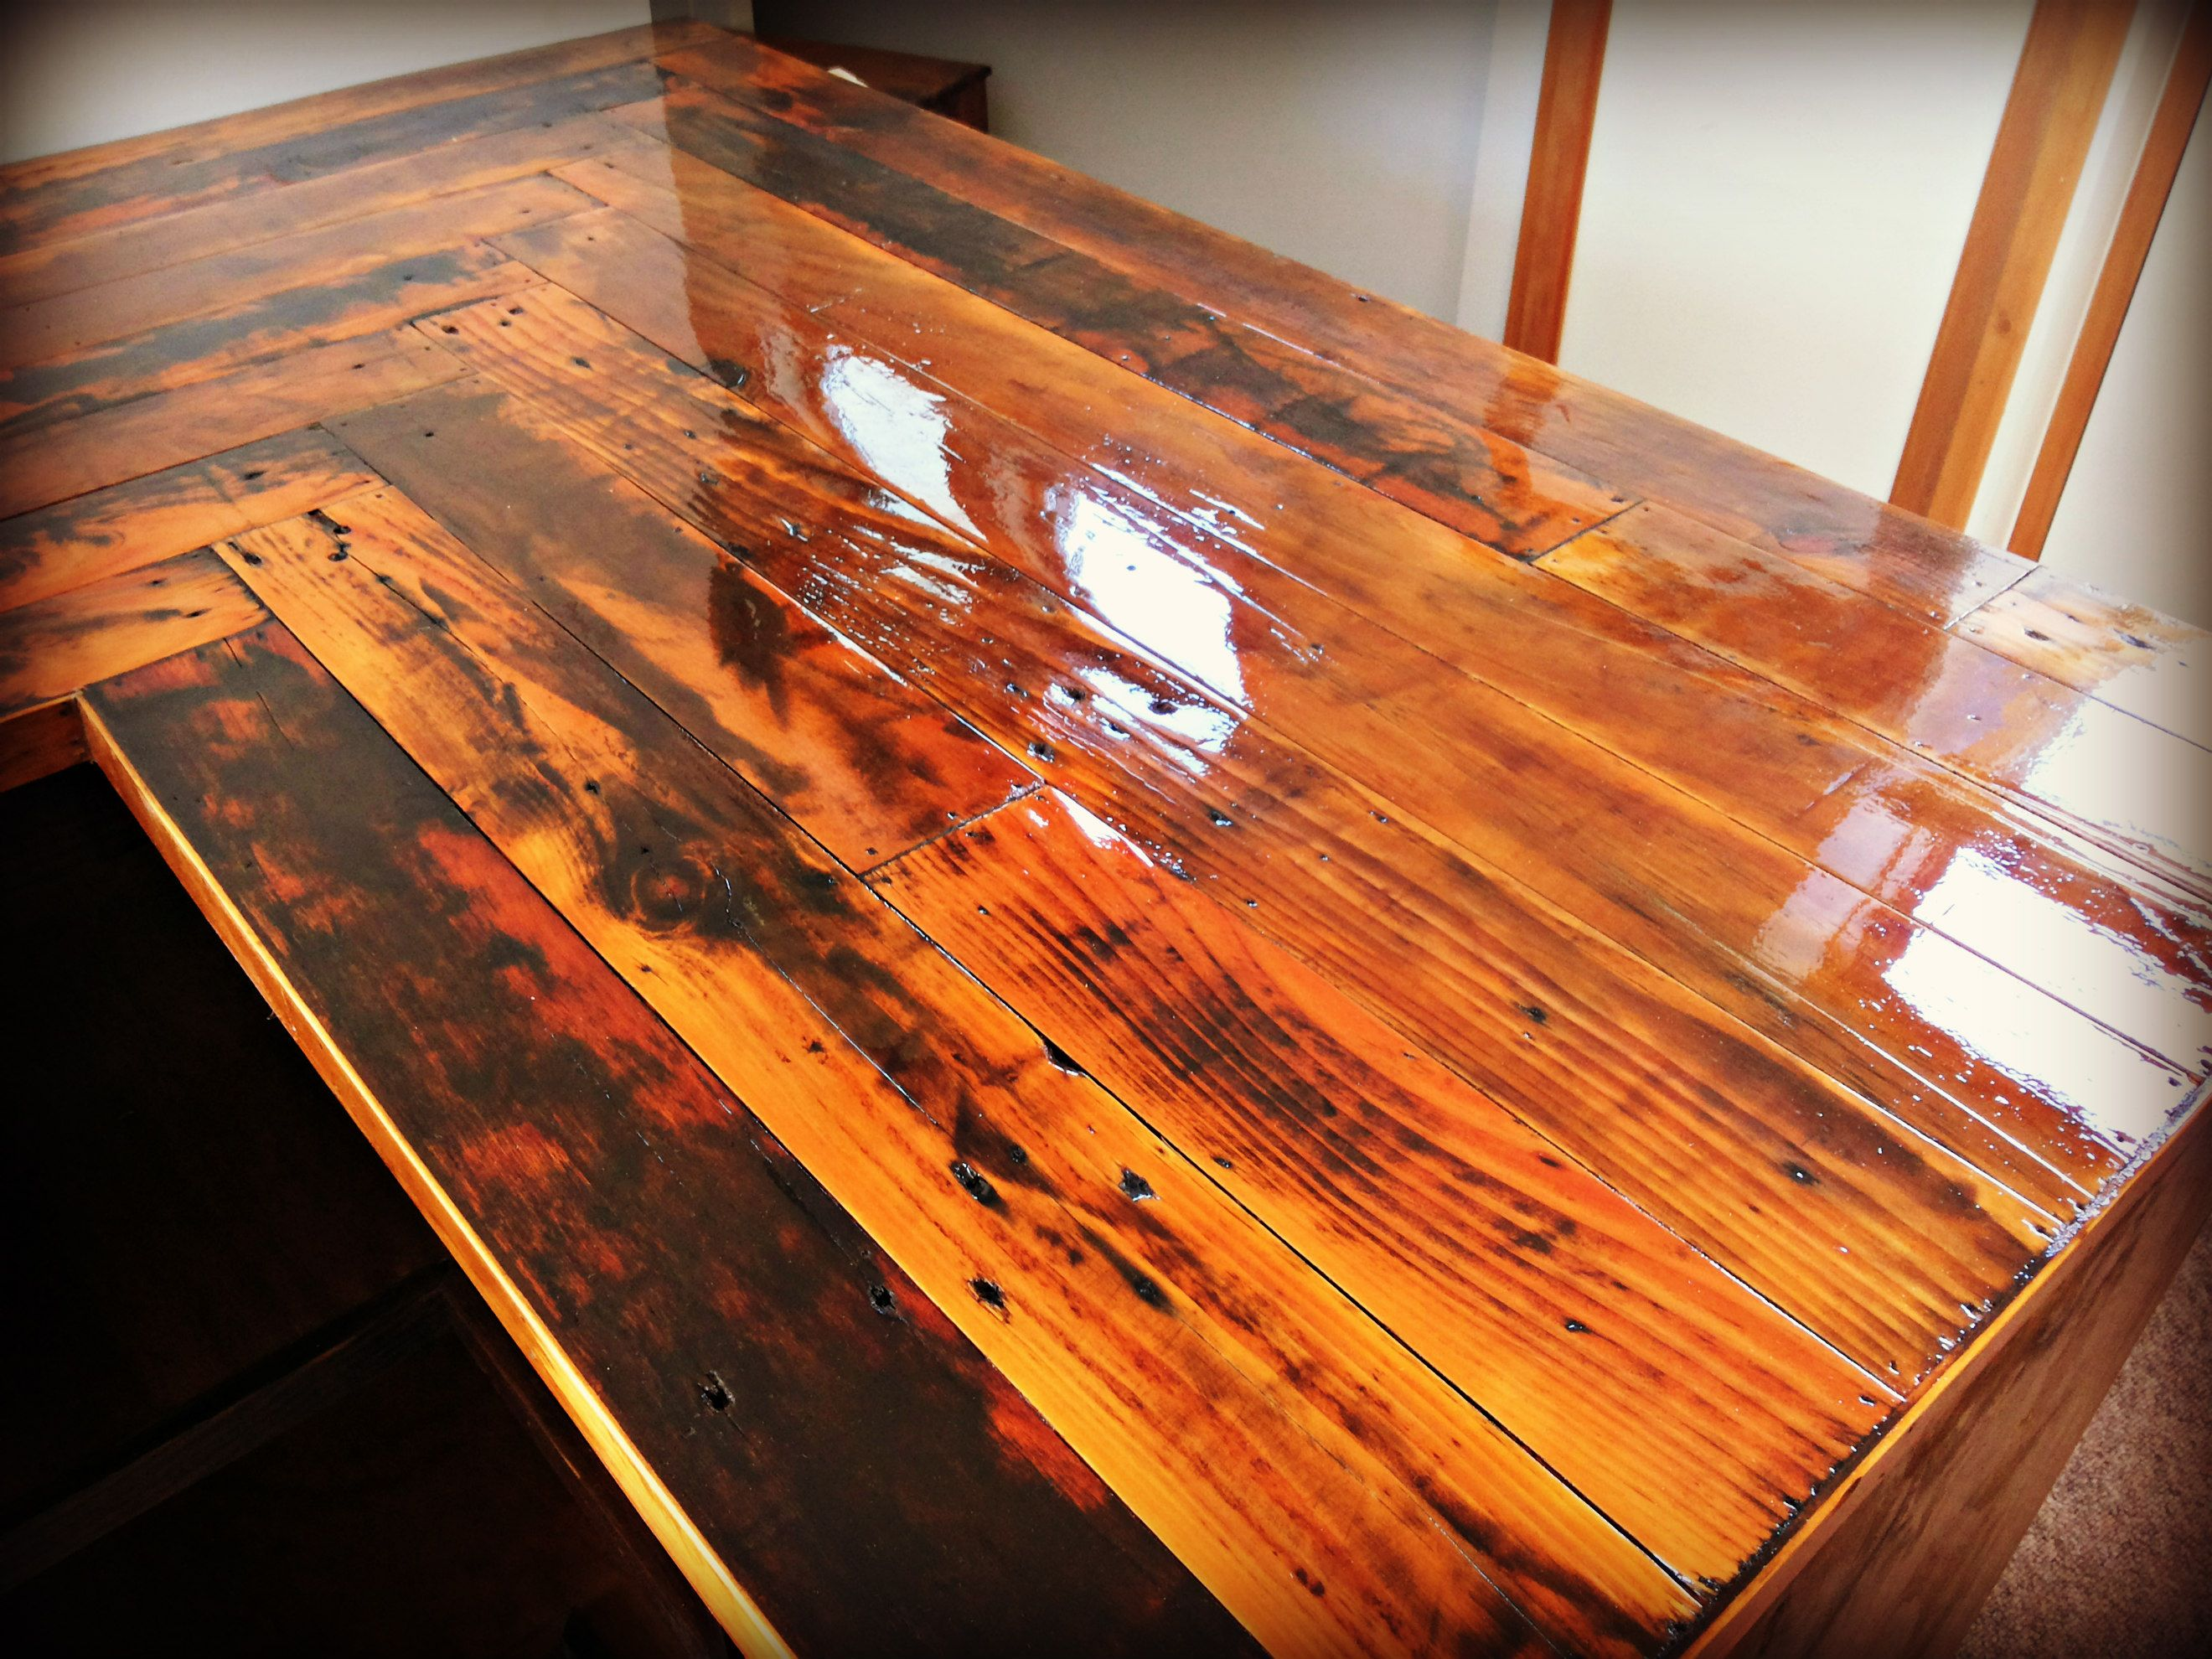 pallet countertop wooden kitchen countertops Kitchen Countertop made with reclaimed pallet wood cabinets